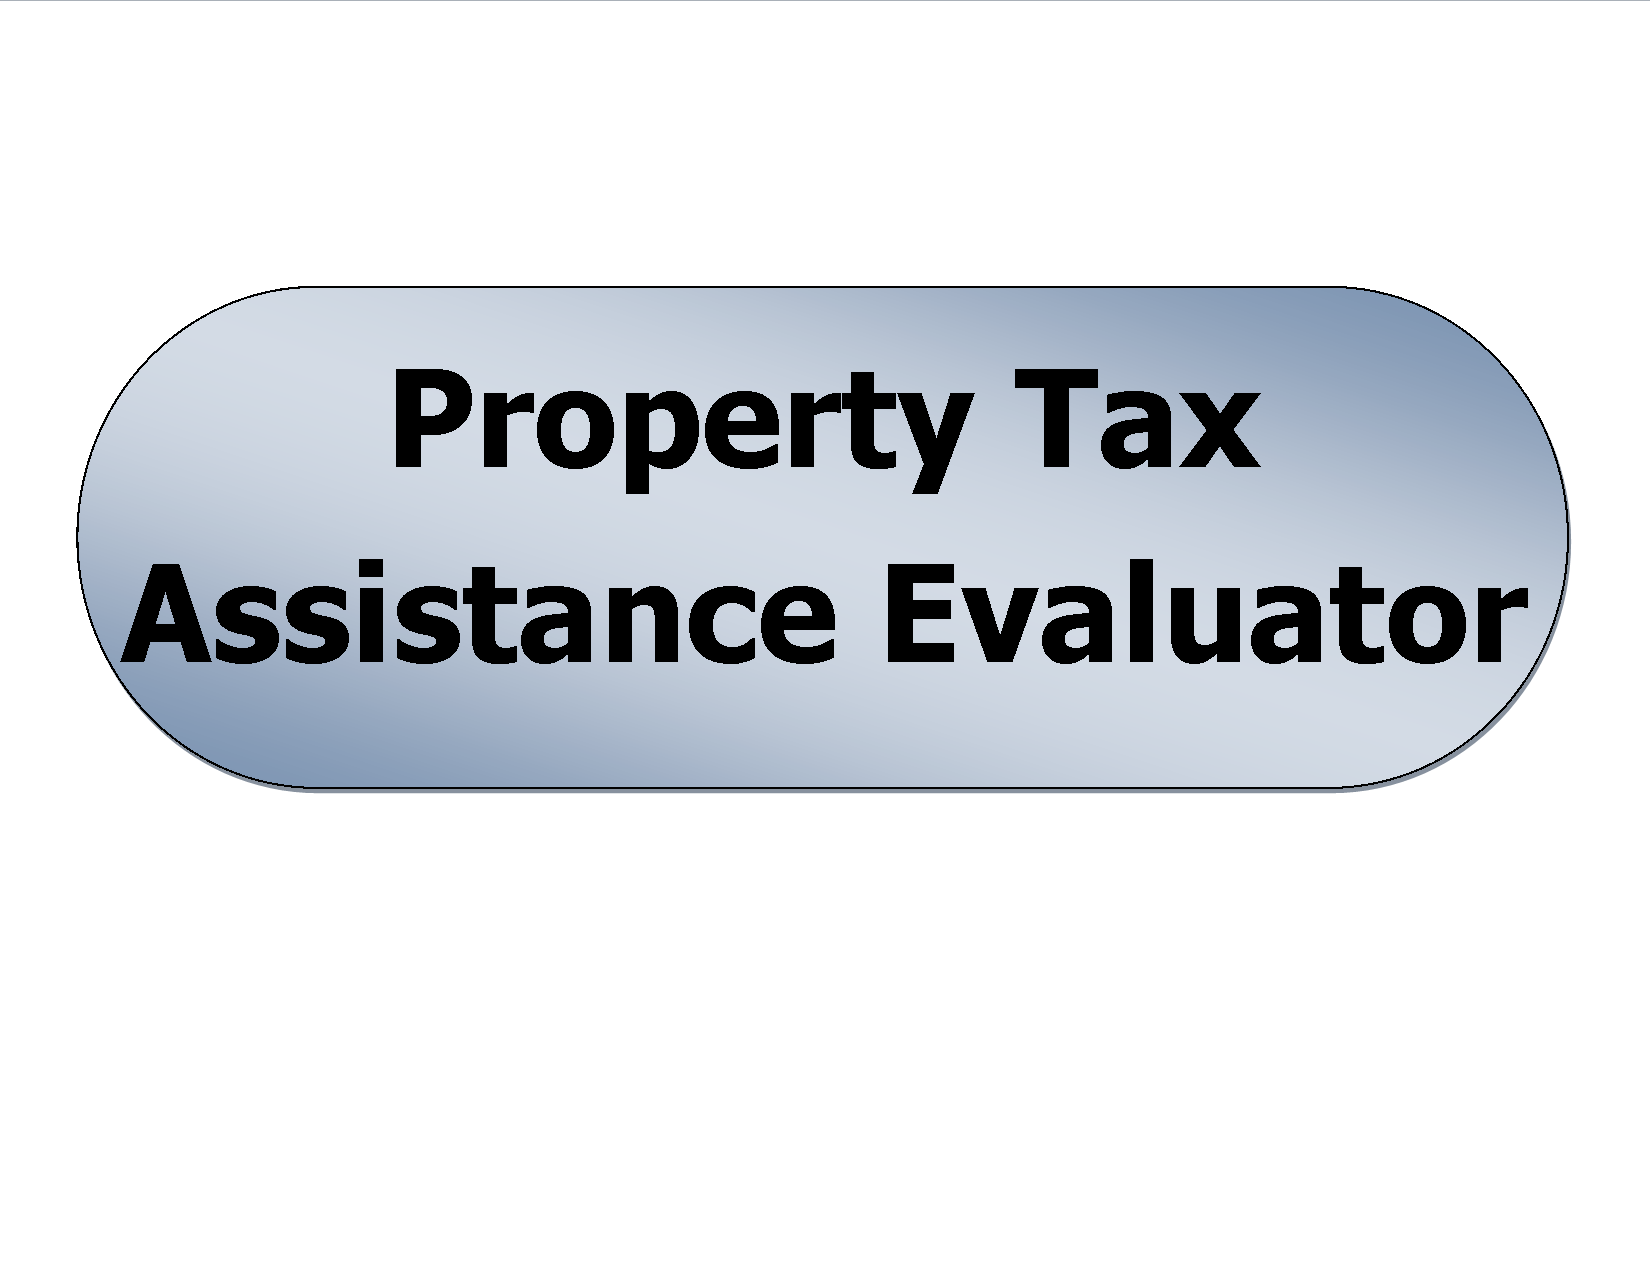 Property Tax Evaluator